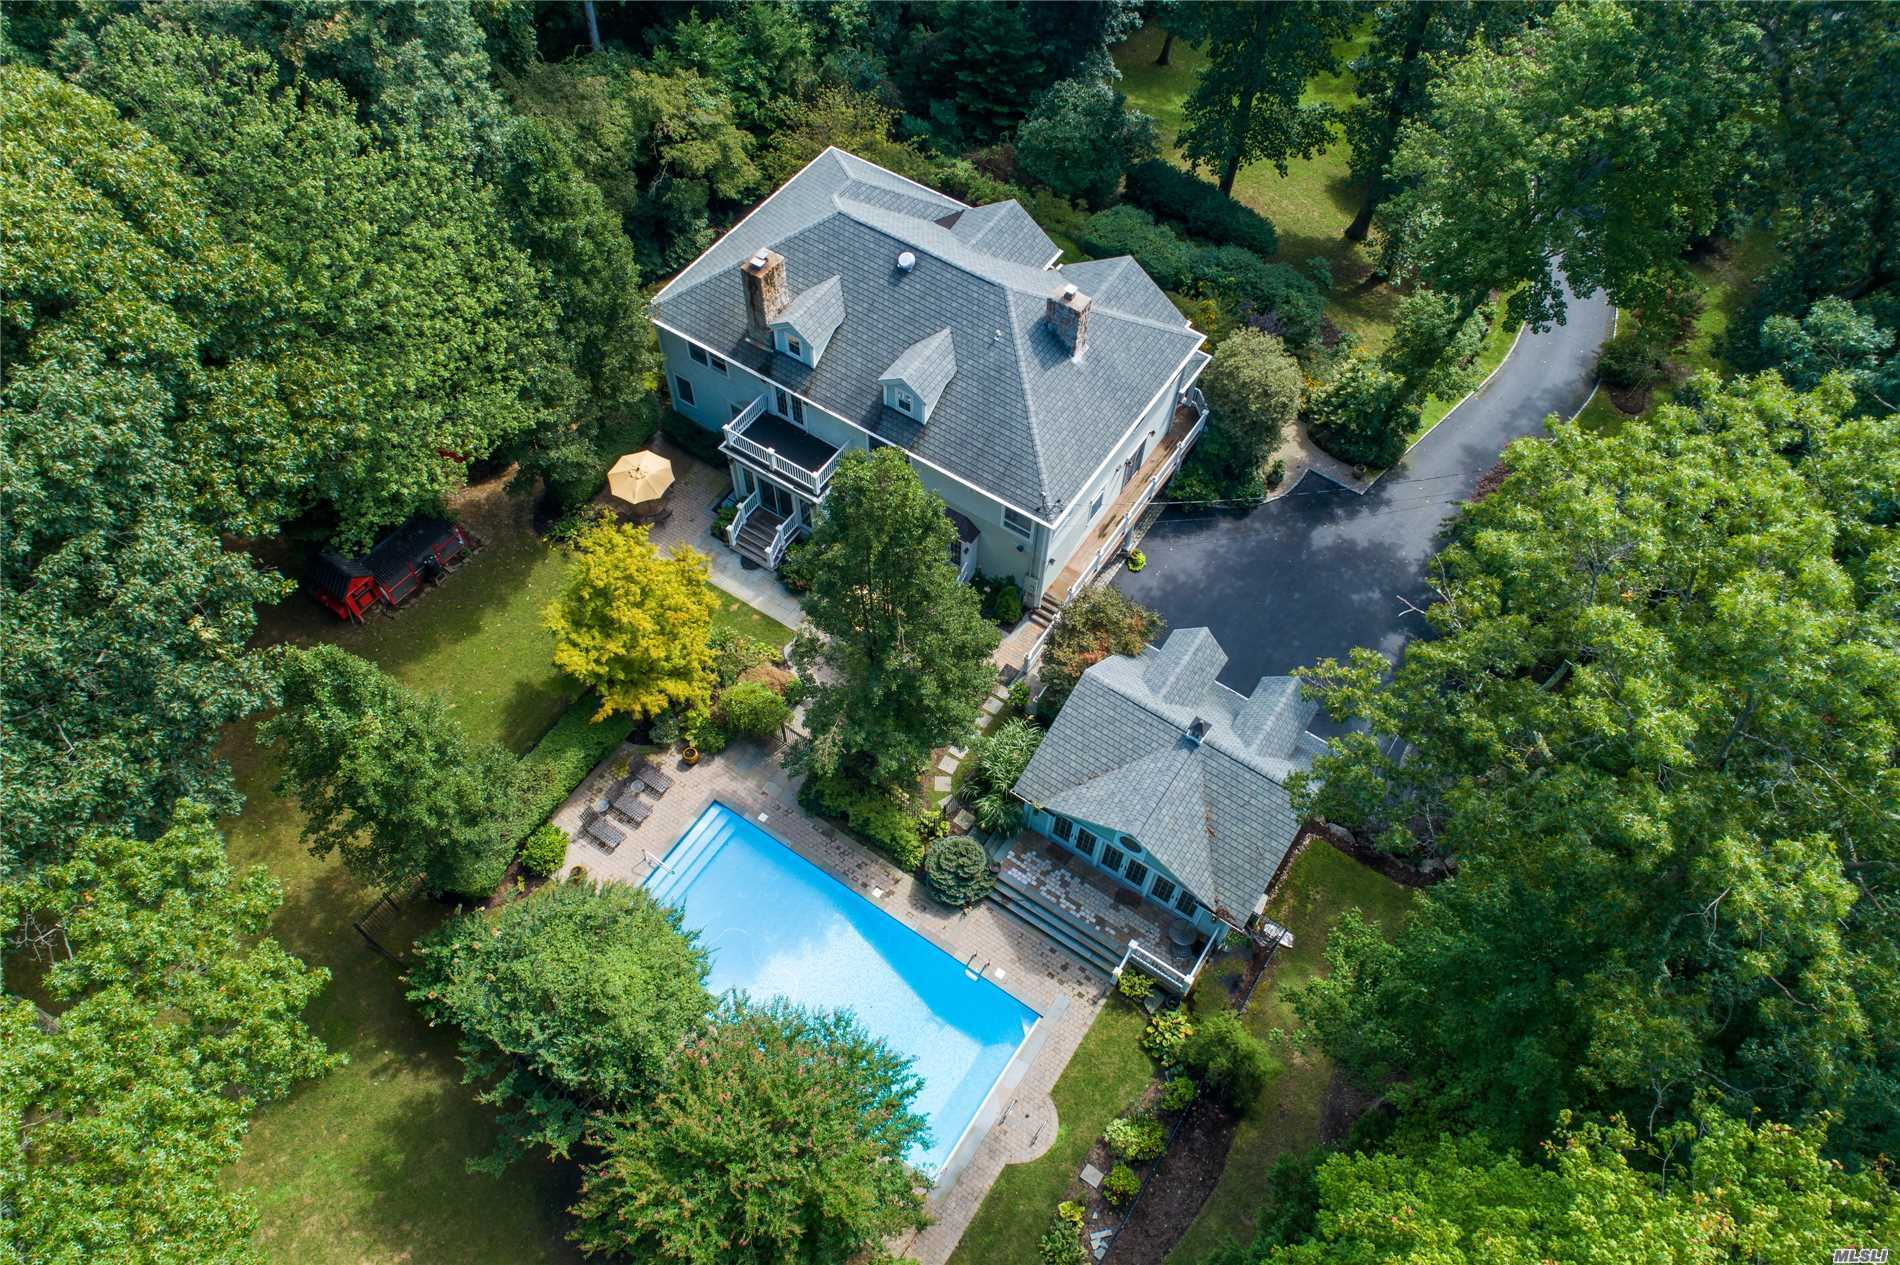 Exceptional Private Cul De Sac Location, Beautifully Updated and Appointed 5 Bedroom Colonial Backing Caumsett State Park. Rich with Moldings, Hardwood Floors, High Ceilings, and a Fabulous Open Floor-plan. Each Principal Room is Generous in Size with Many Details and Amenities. Enjoy Gathering in the Newer Kitchen with An Outdoor Entertaining Area. This Fabulous Setting has A Separate Pool House with Views to the Heated In Ground Pool and Flat Fenced Back Yard. Fiddlers Green Beach ( Dues)